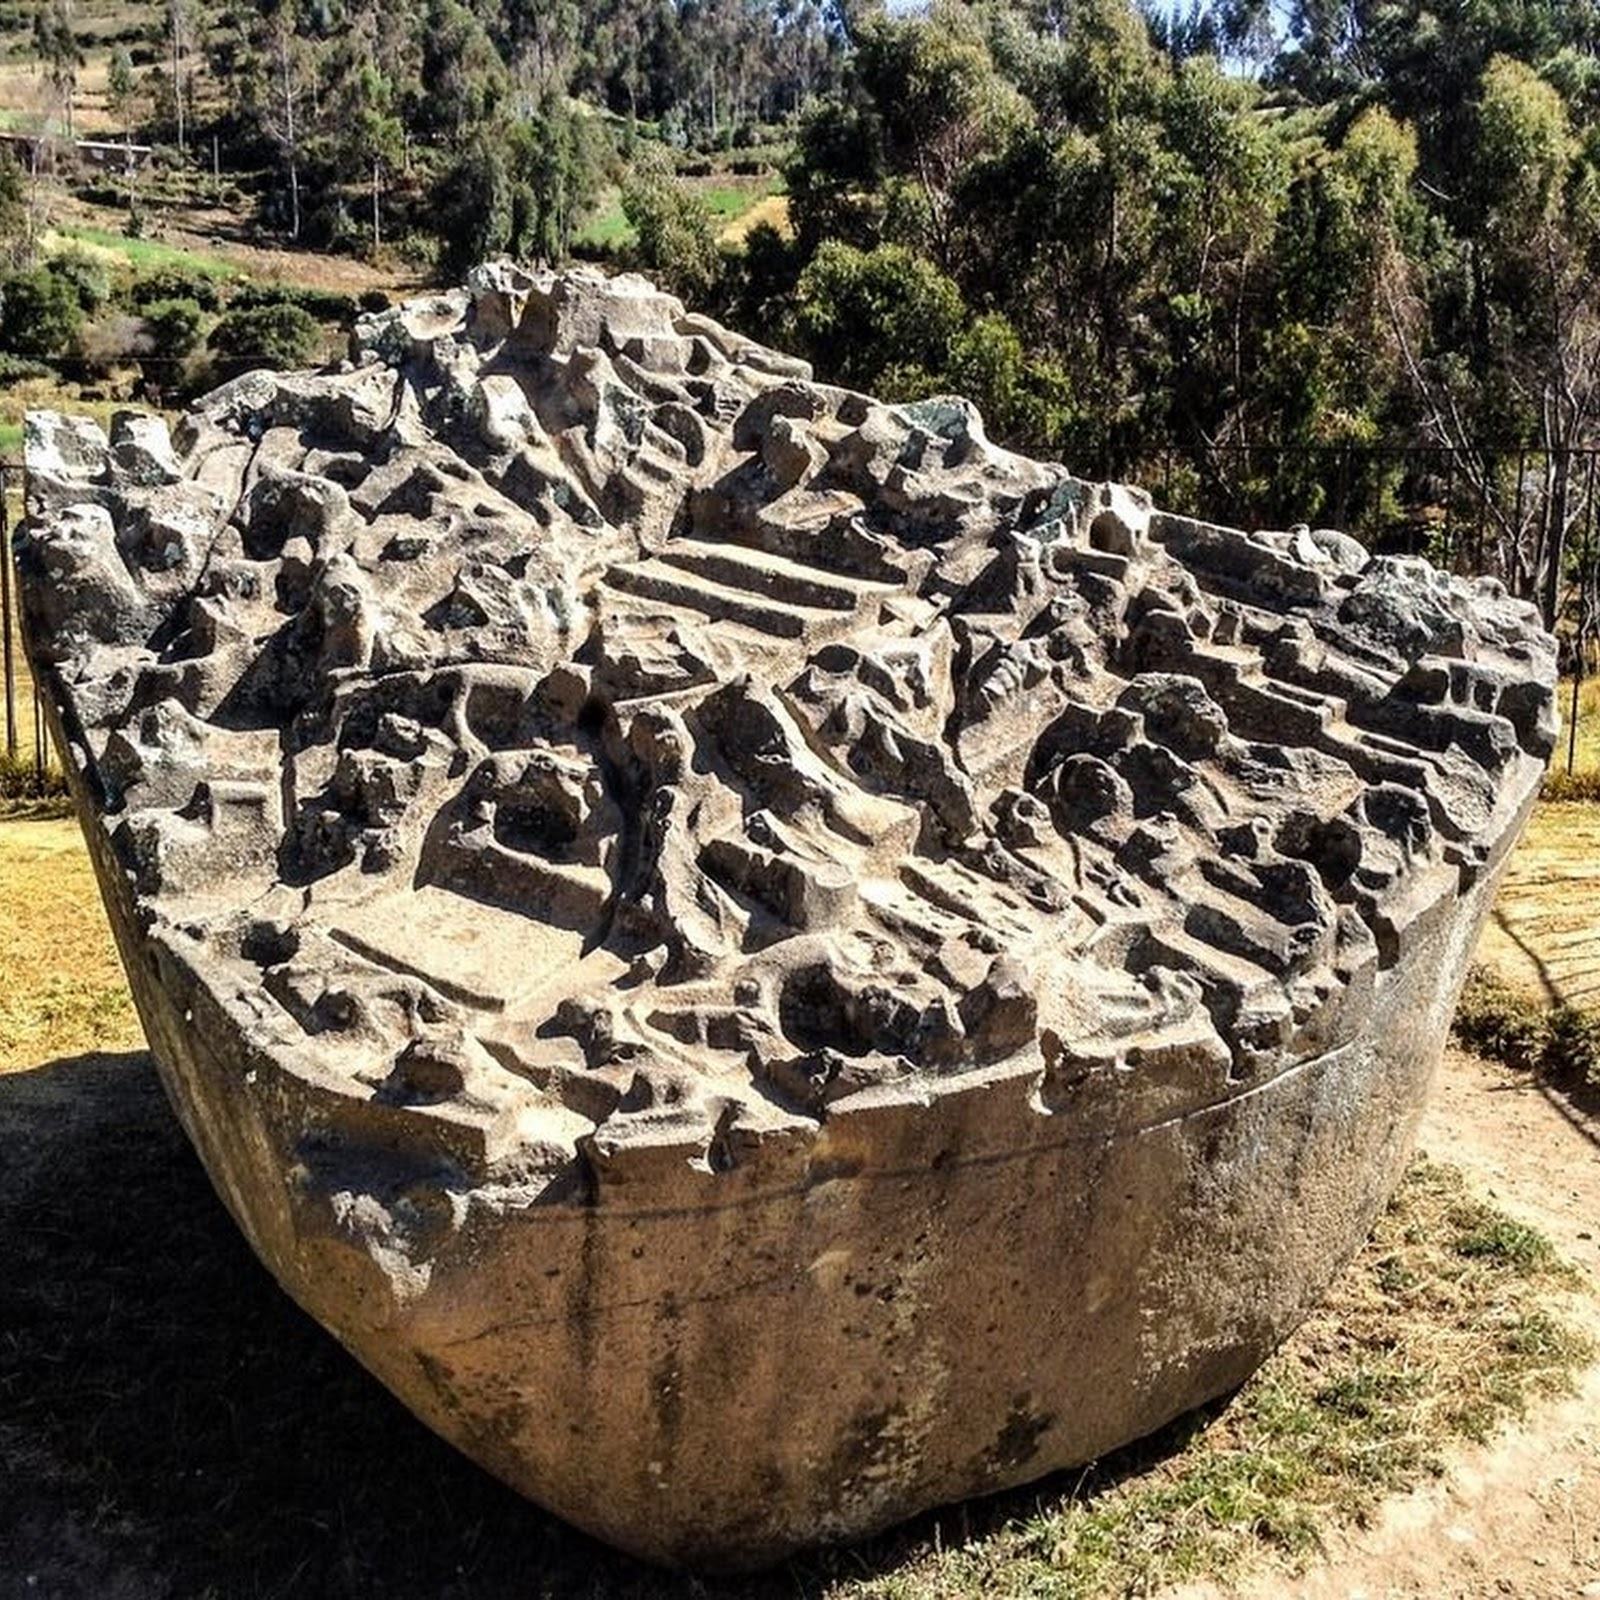 Sayhuite Stone: An Ancient Hydraulic Scale Model of The Inca Empire?